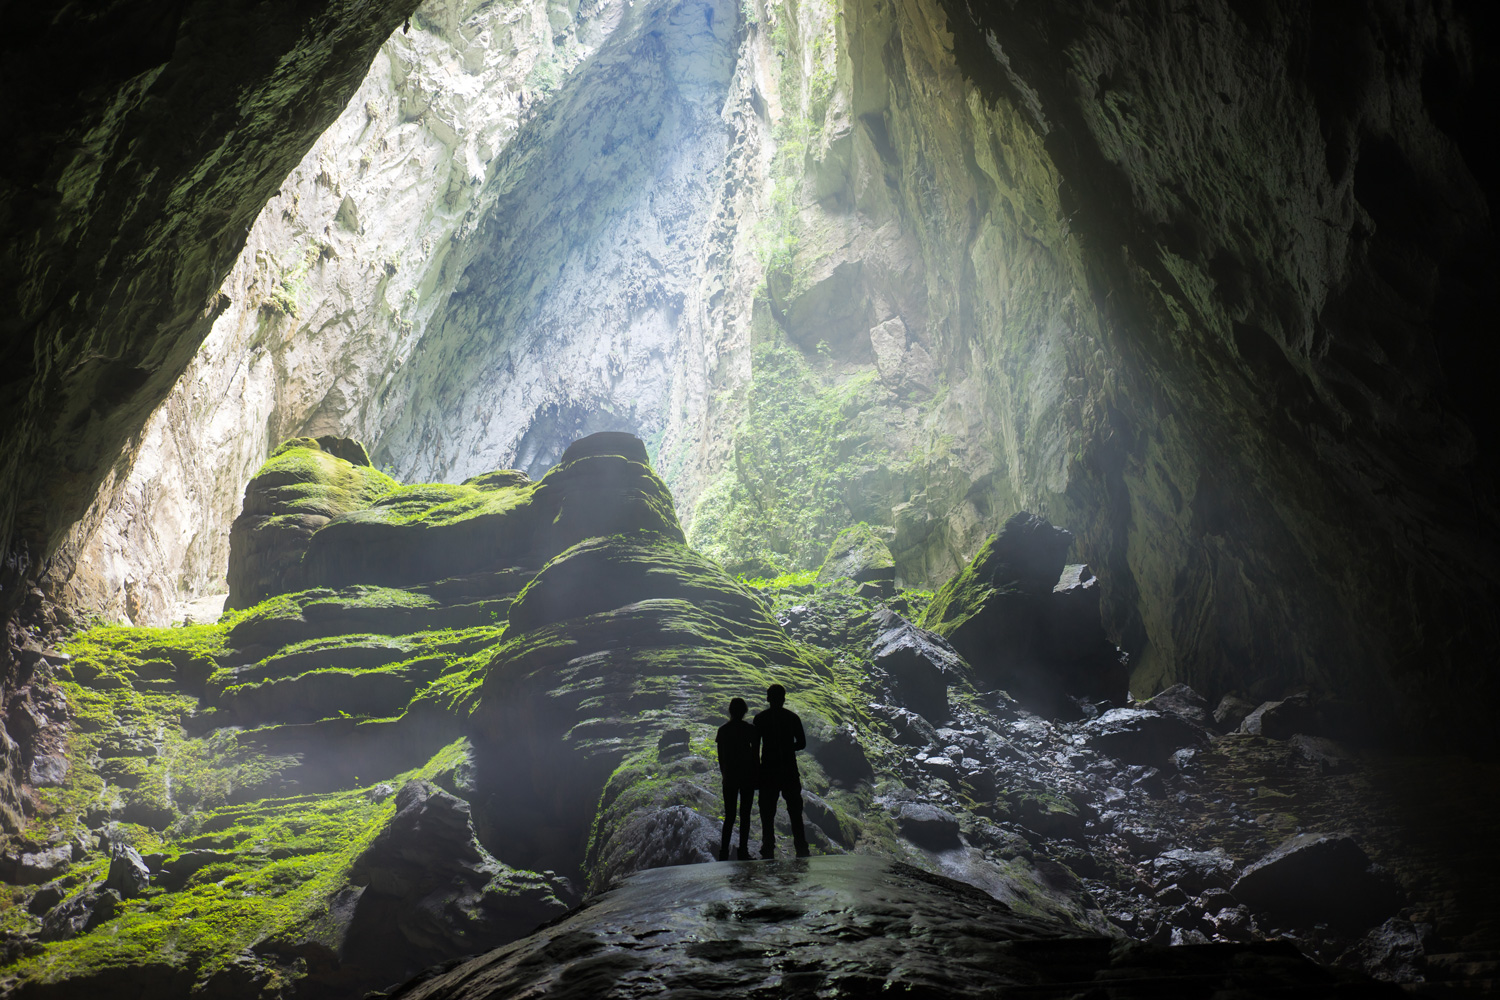 Mystery misty cave entrance in Son Doong Cave, Vietnam